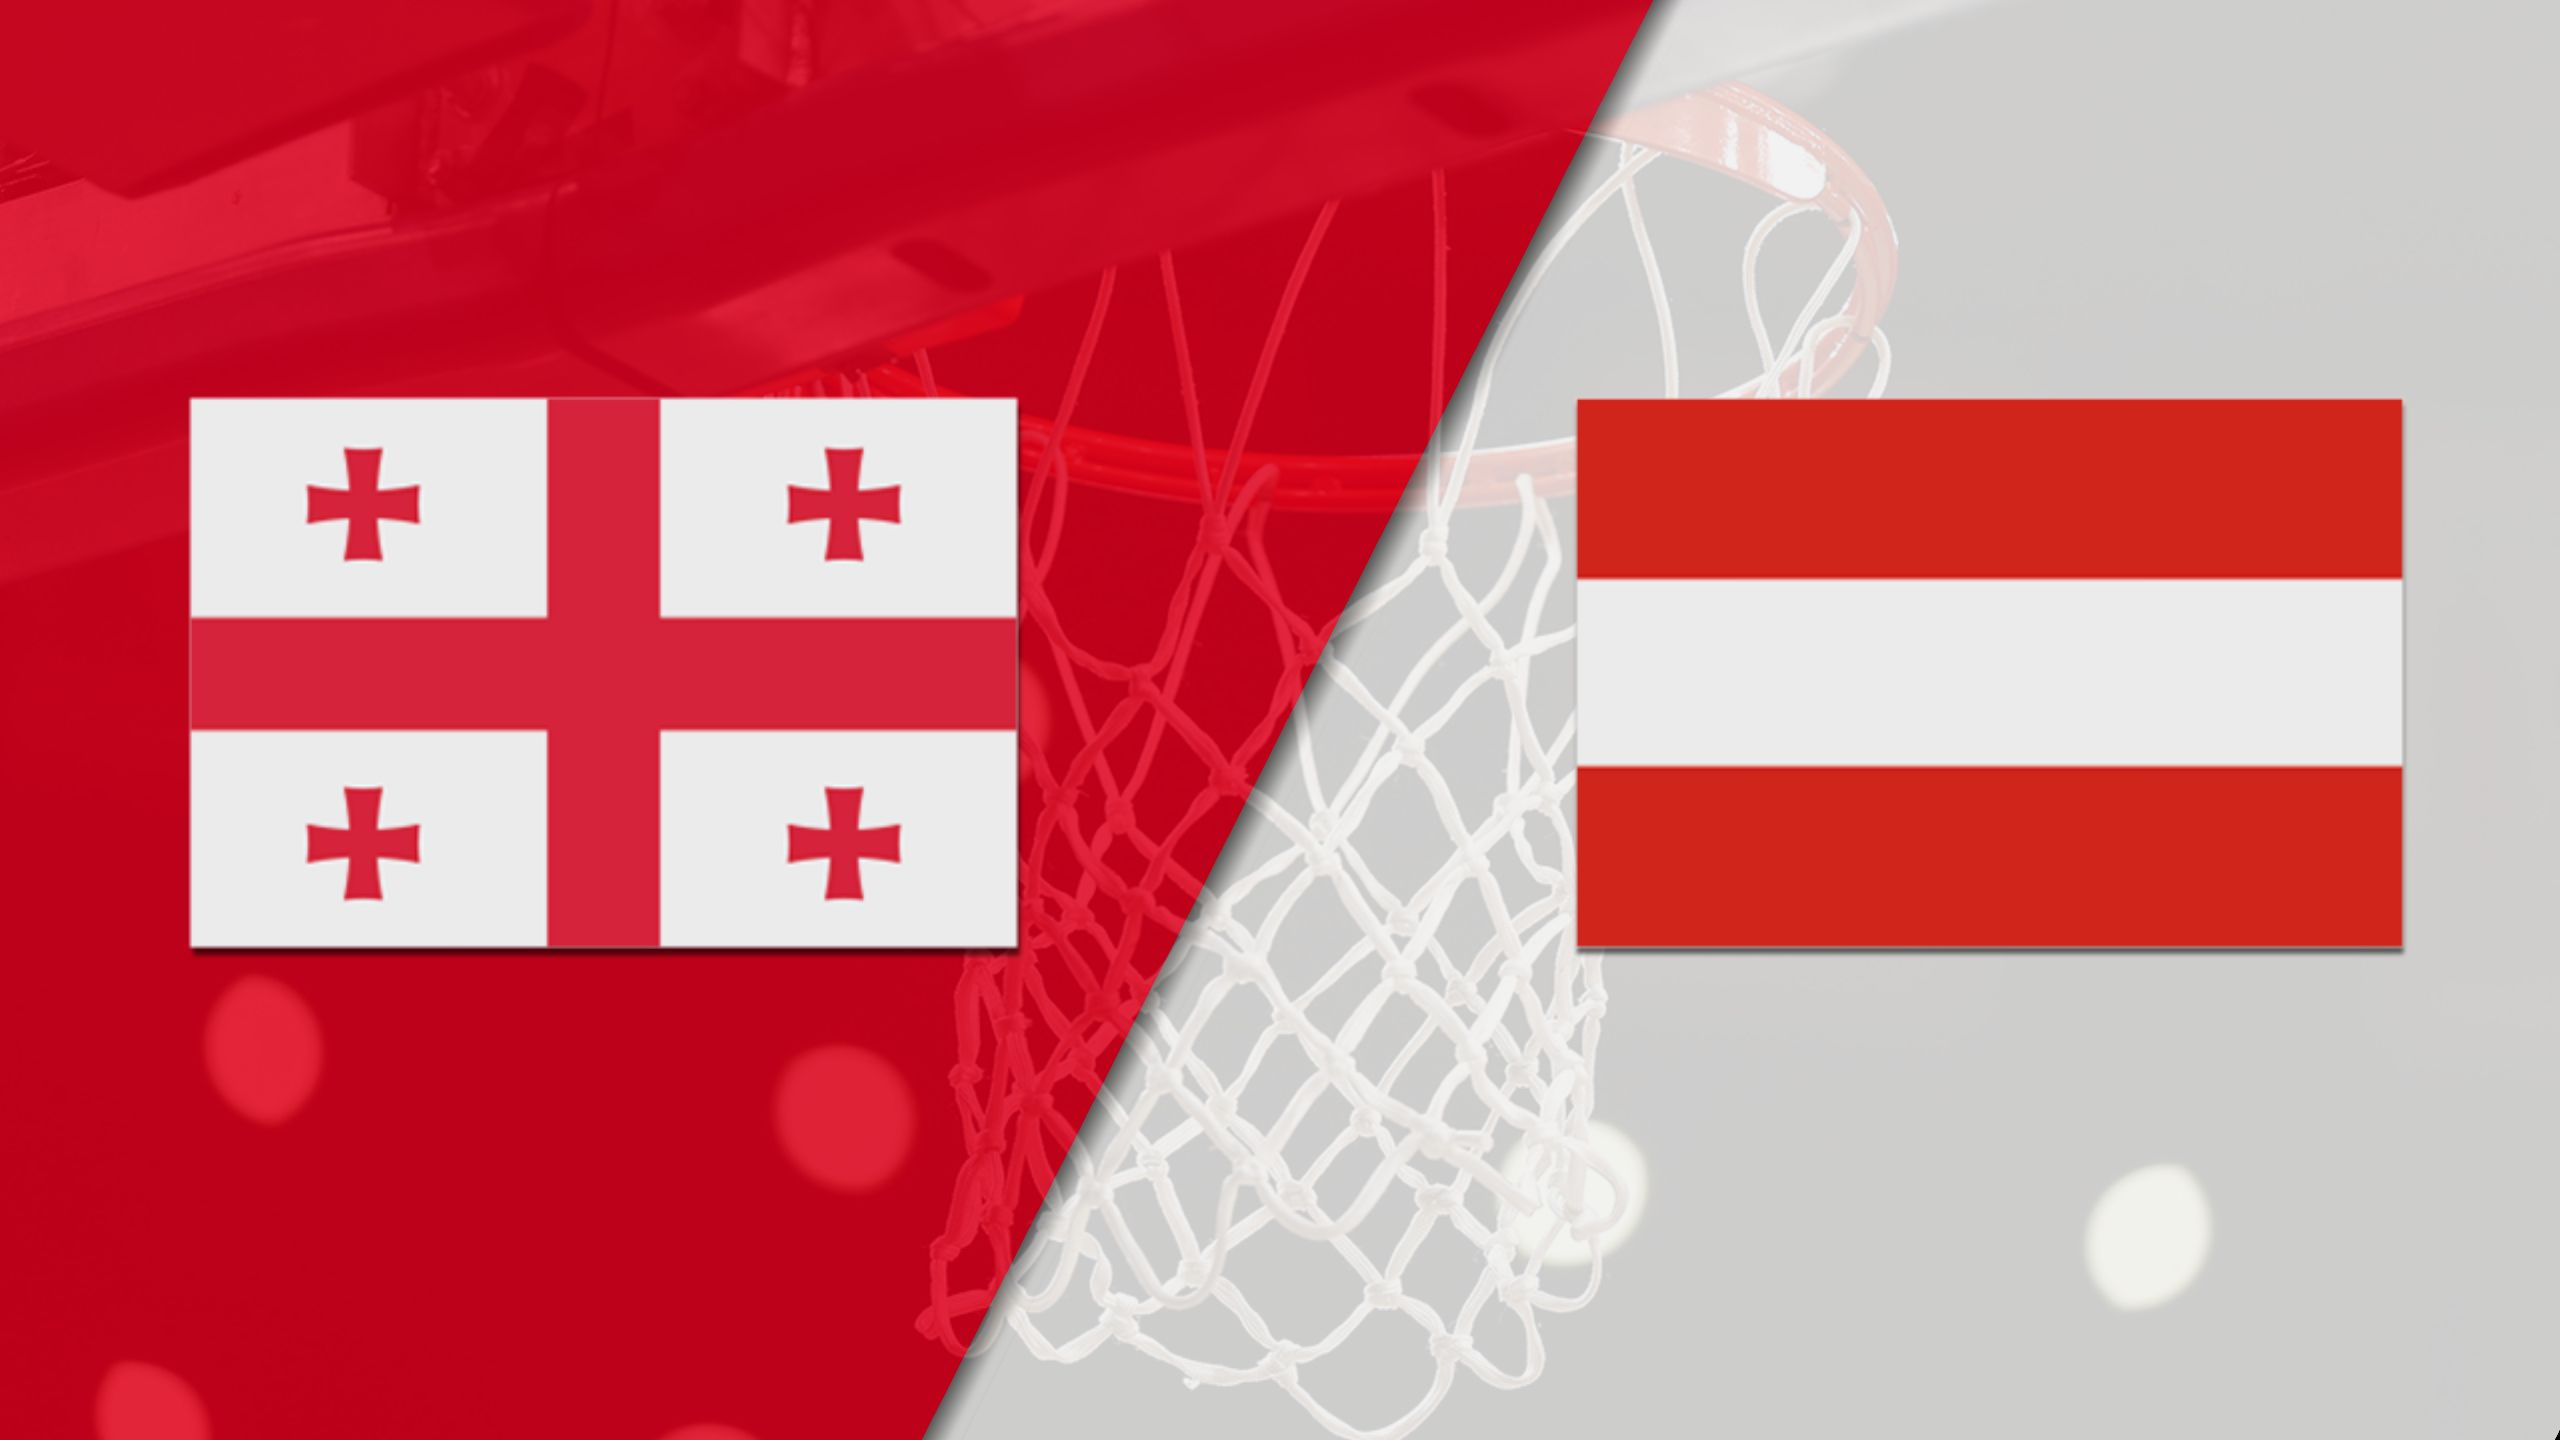 Georgia vs. Austria (FIBA World Cup 2019 Qualifier)